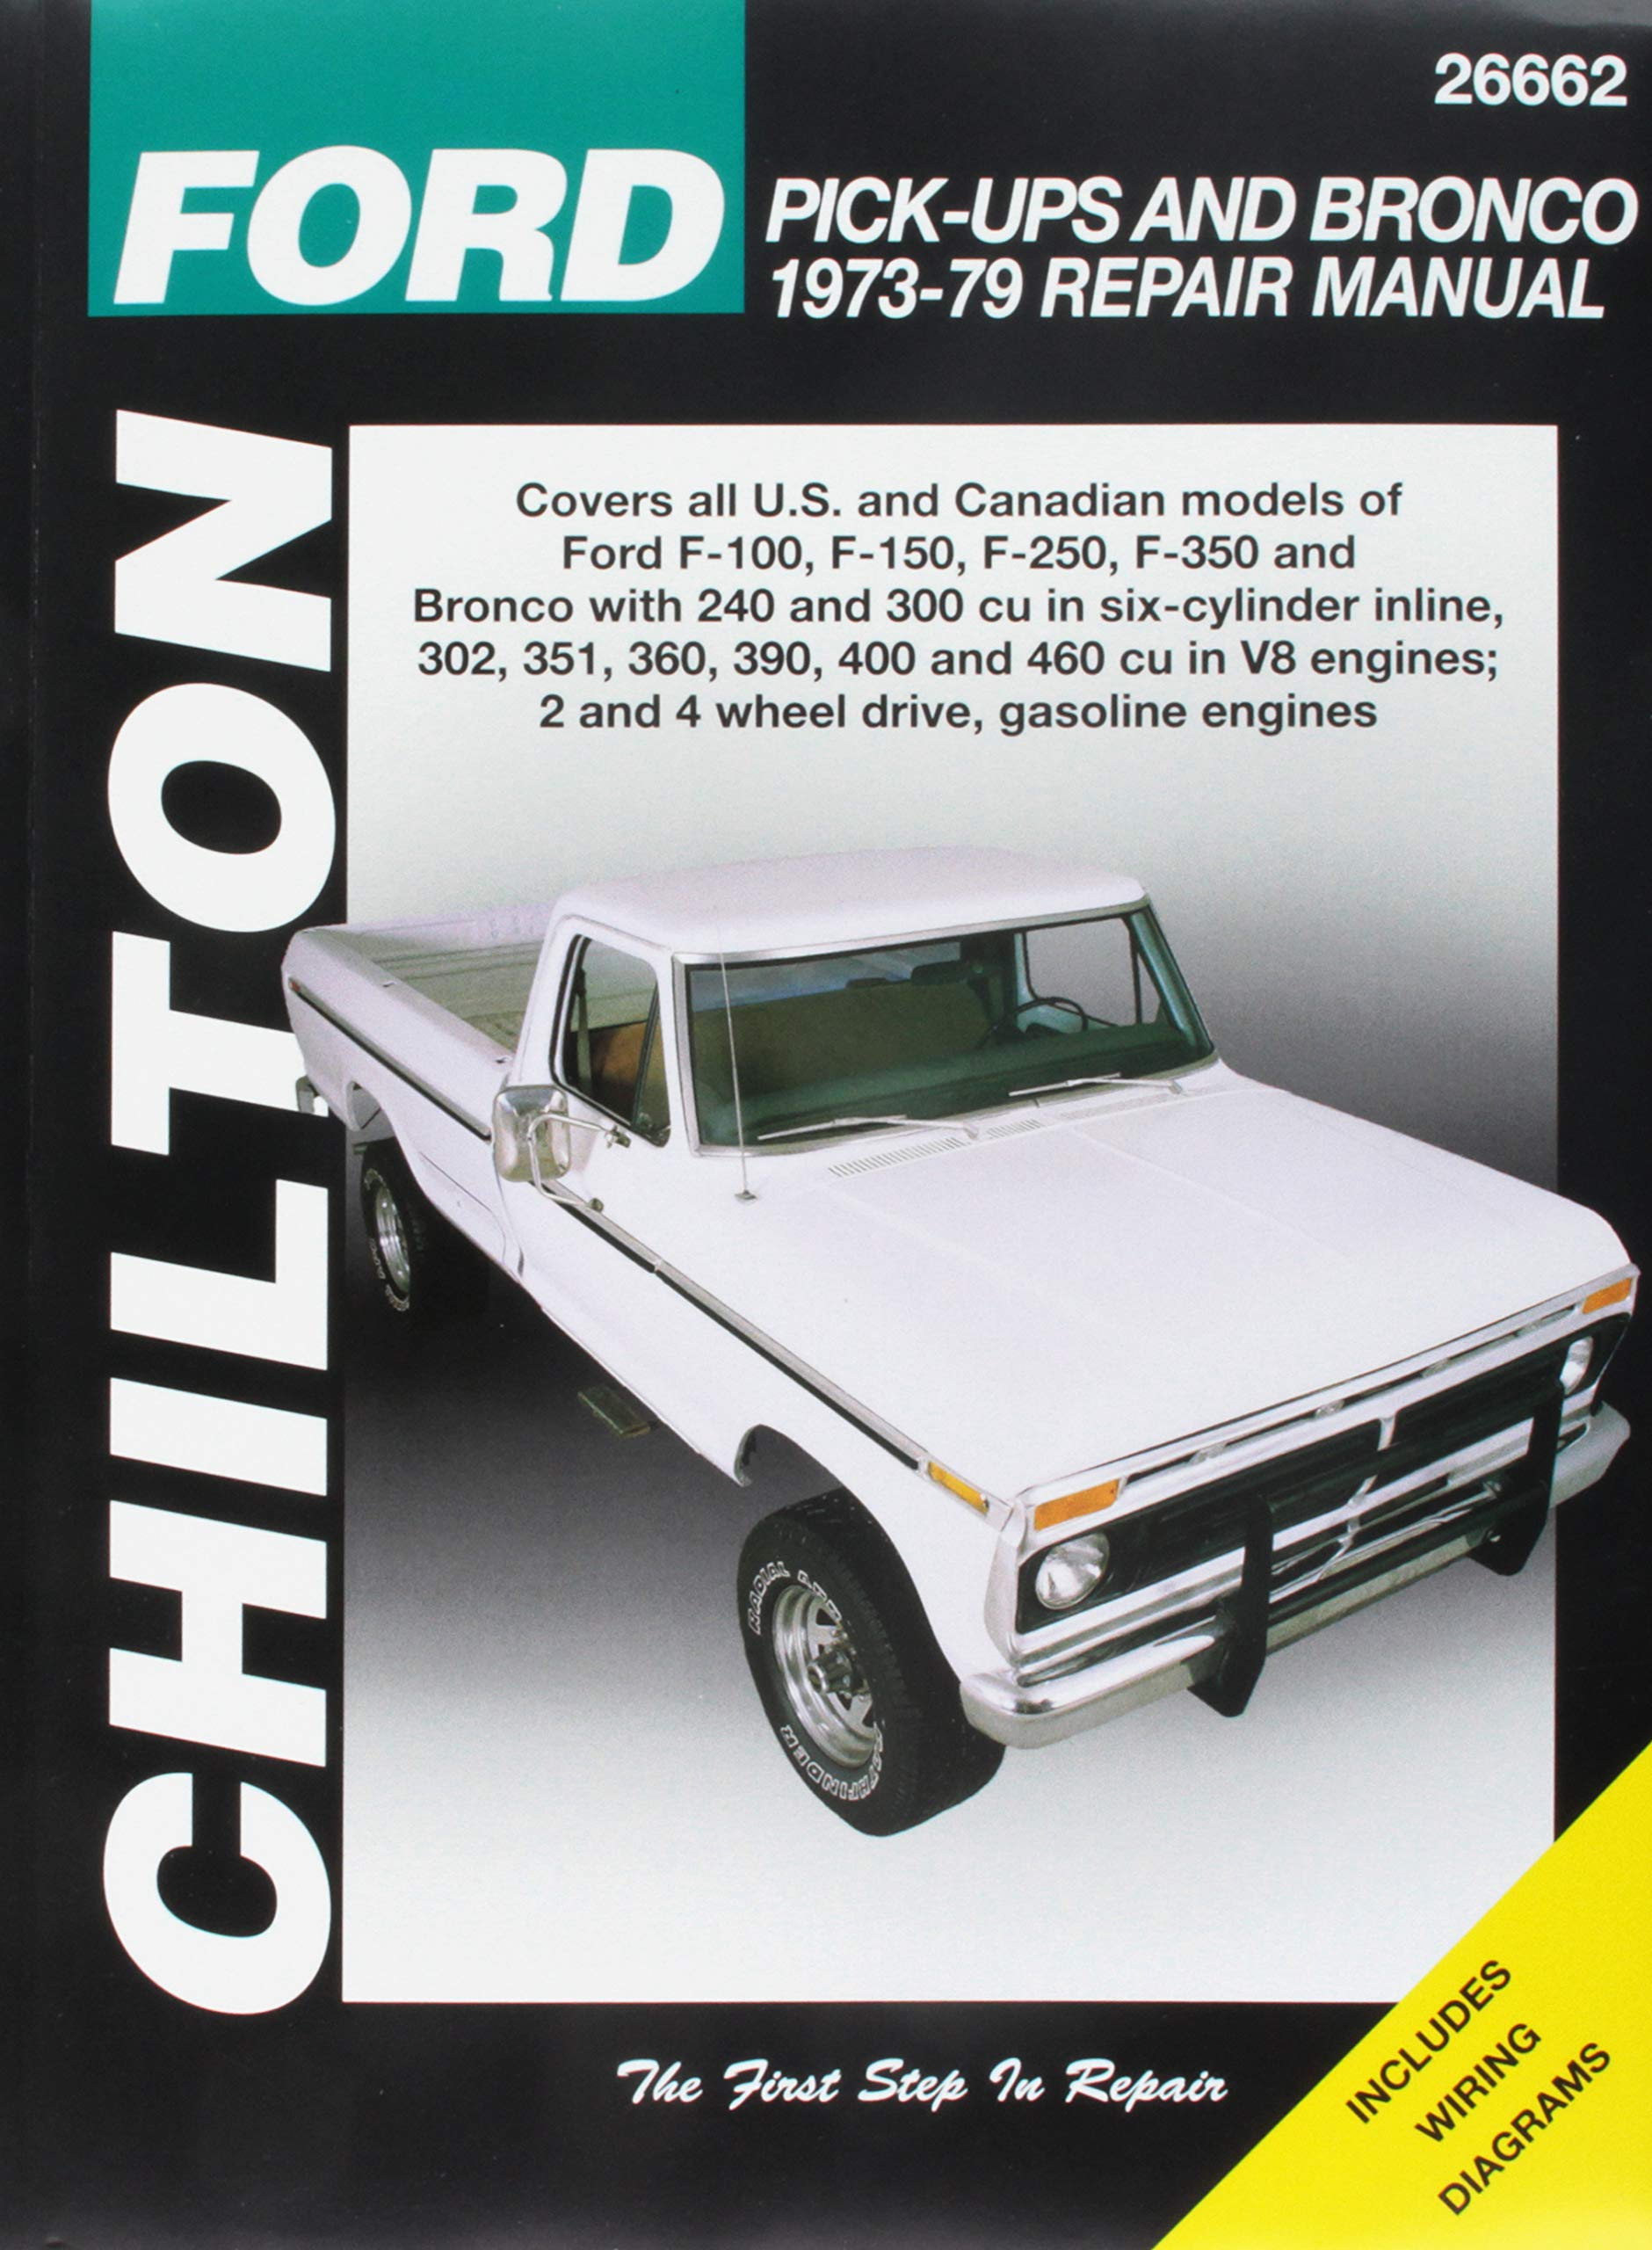 Ford Pick-Ups and Bronco Repair Manual 1973-79 covering Ford F-100, F-150,  F-250, F-350 and Bronco, 2 and 4 wheel drive: Chilton: 9781620922934:  Amazon.com: ...